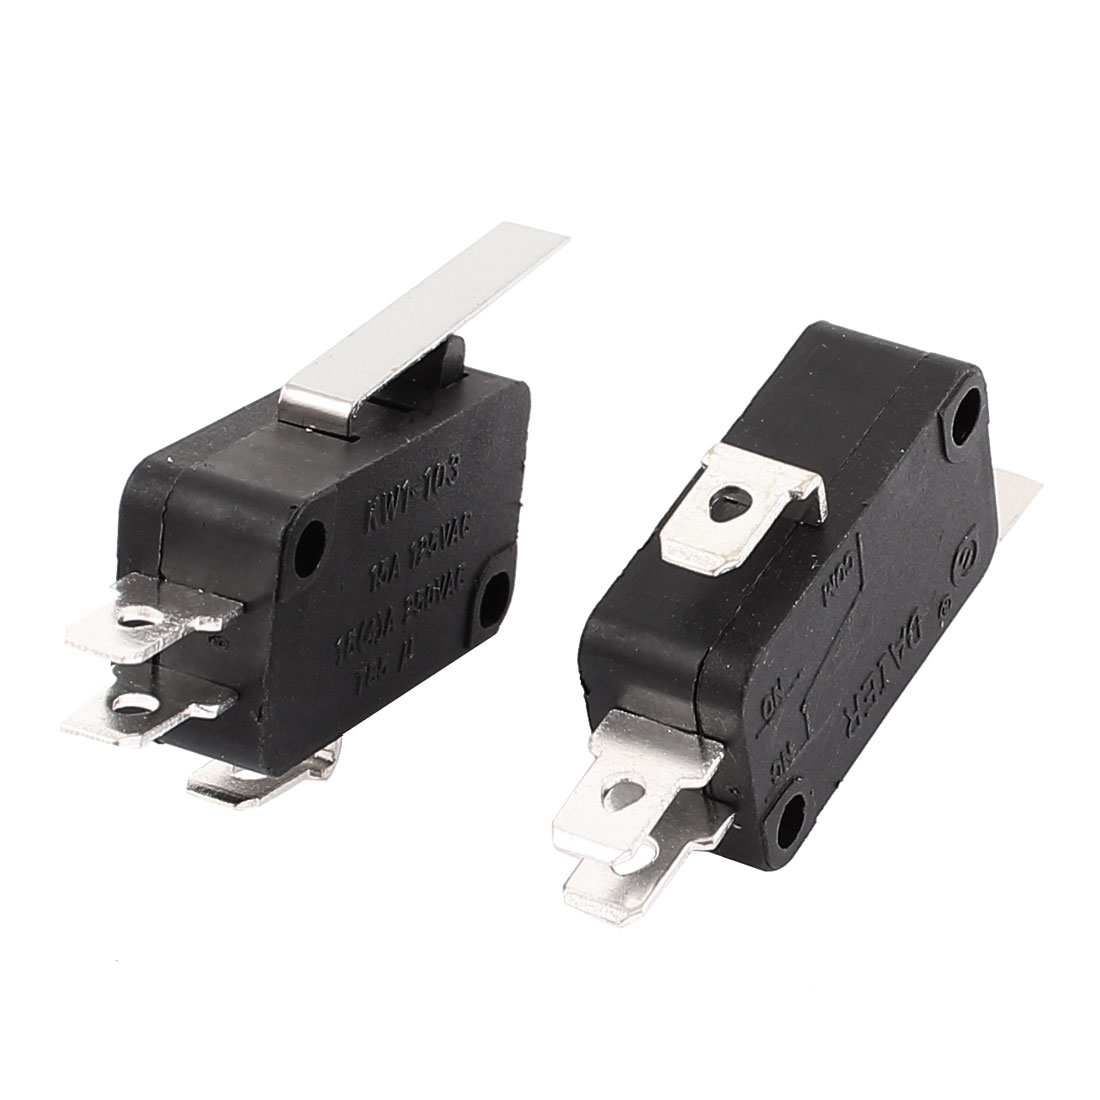 2 Pcs 250VAC 16A 125VAC 15A Long Lever SPDT Momentary Micro Limit Switch Black